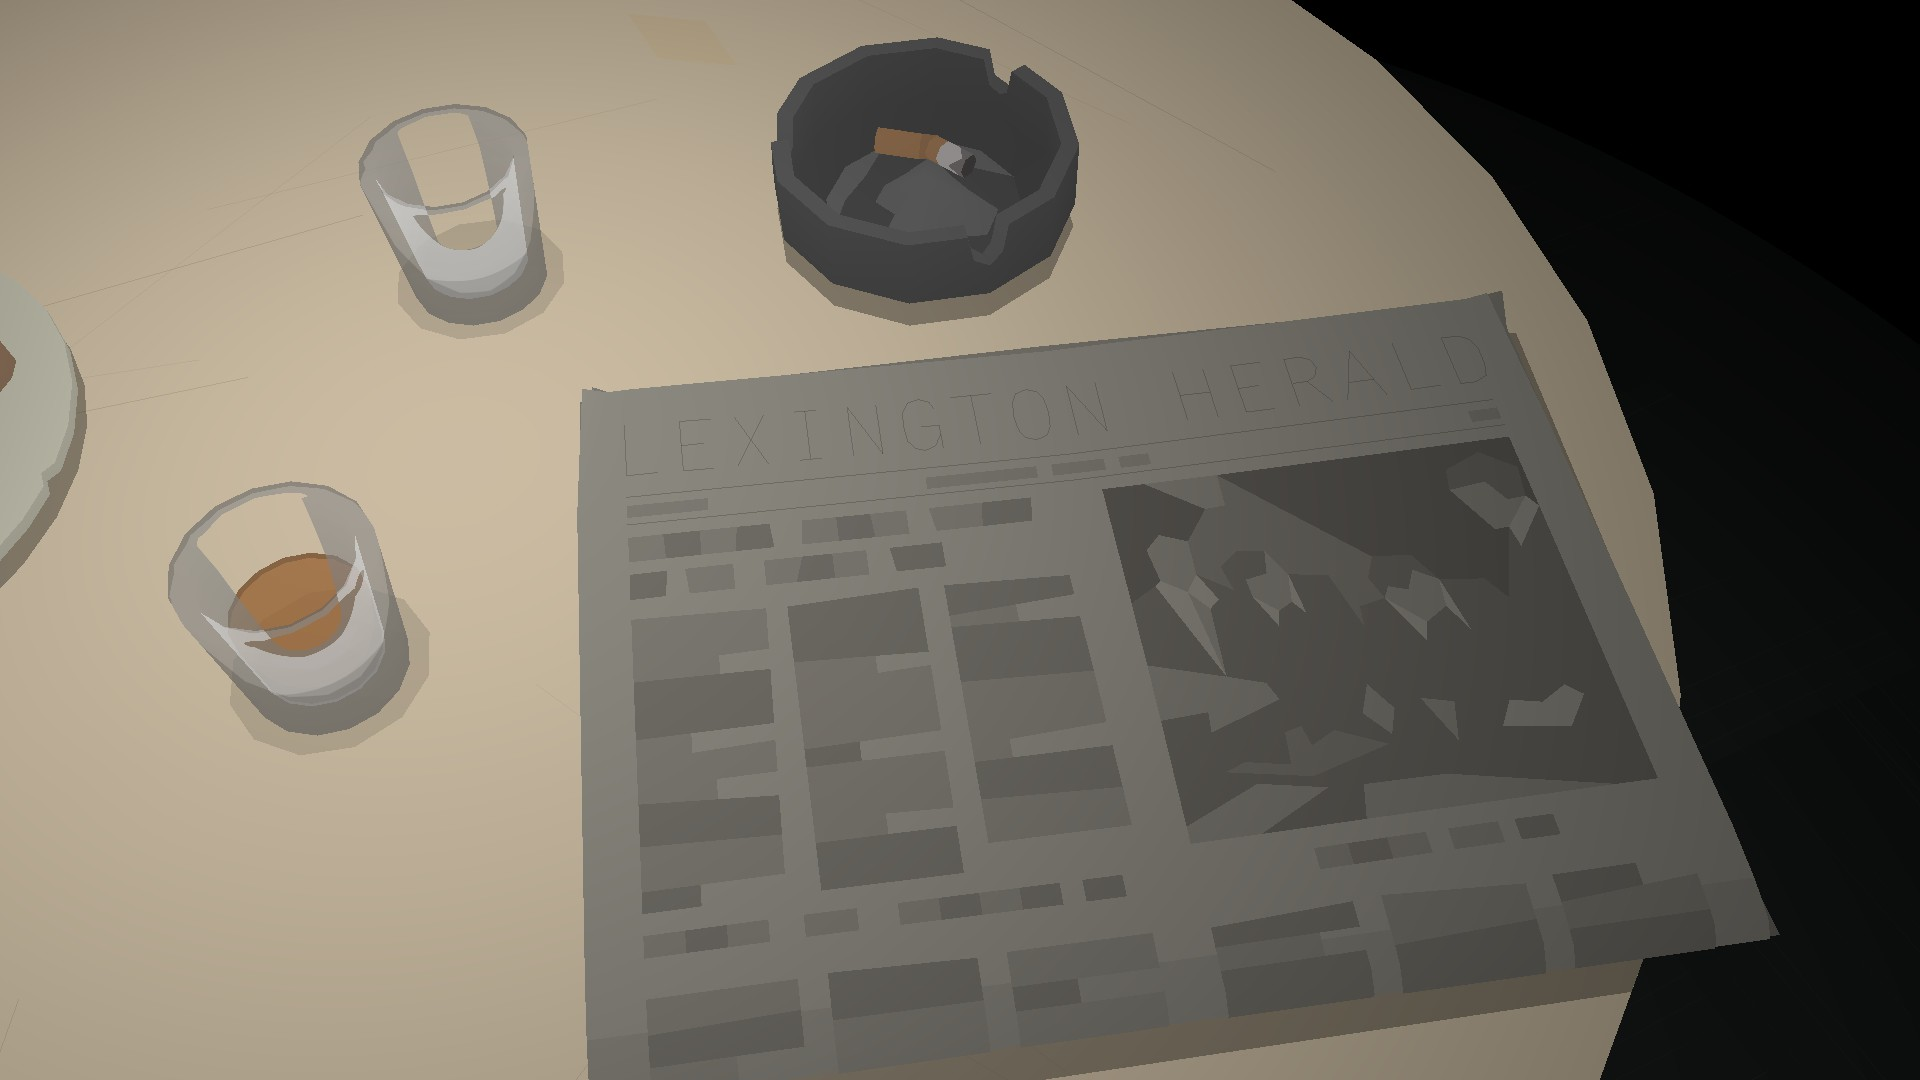 The fictional newspaper Lexington herald lies on a table near two cups of coffee and an ashtray.